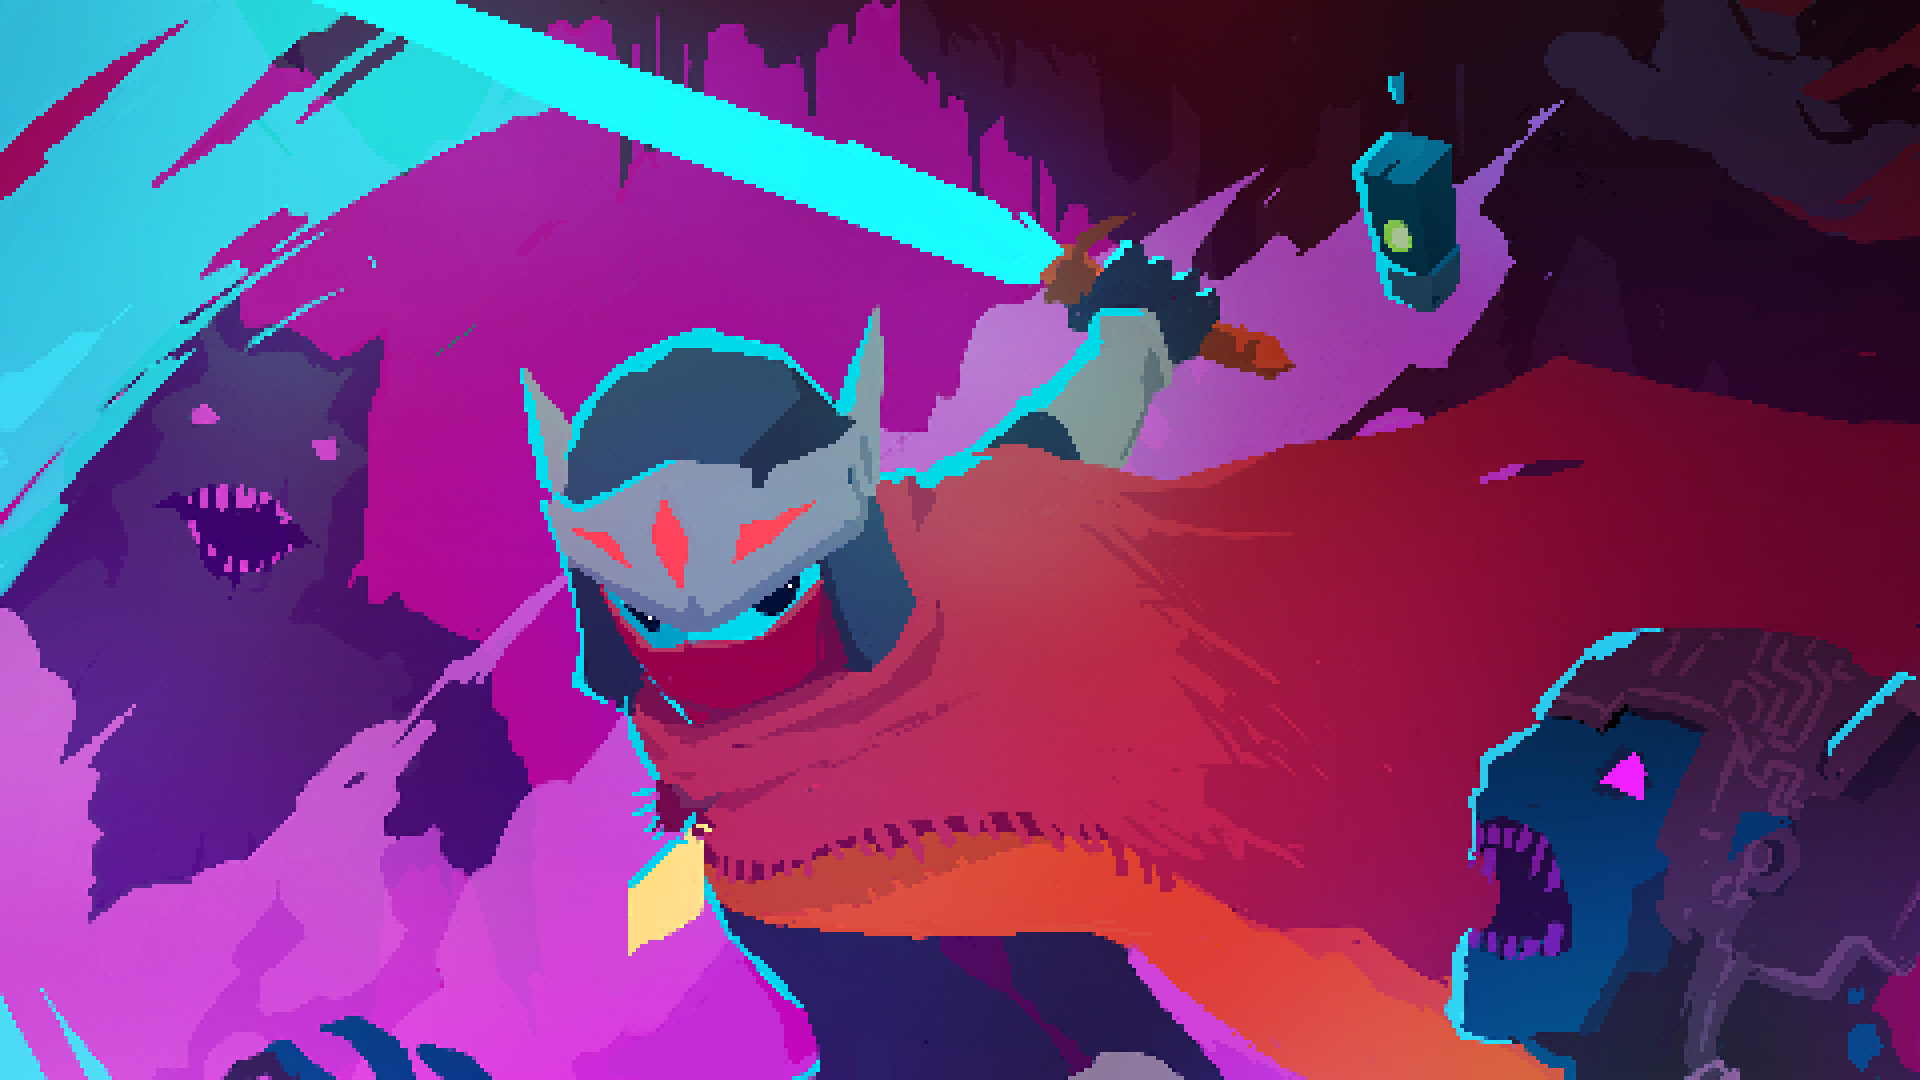 Brawlout is coming to Switch, adding the Hyper Light Drifter protagonist screenshot